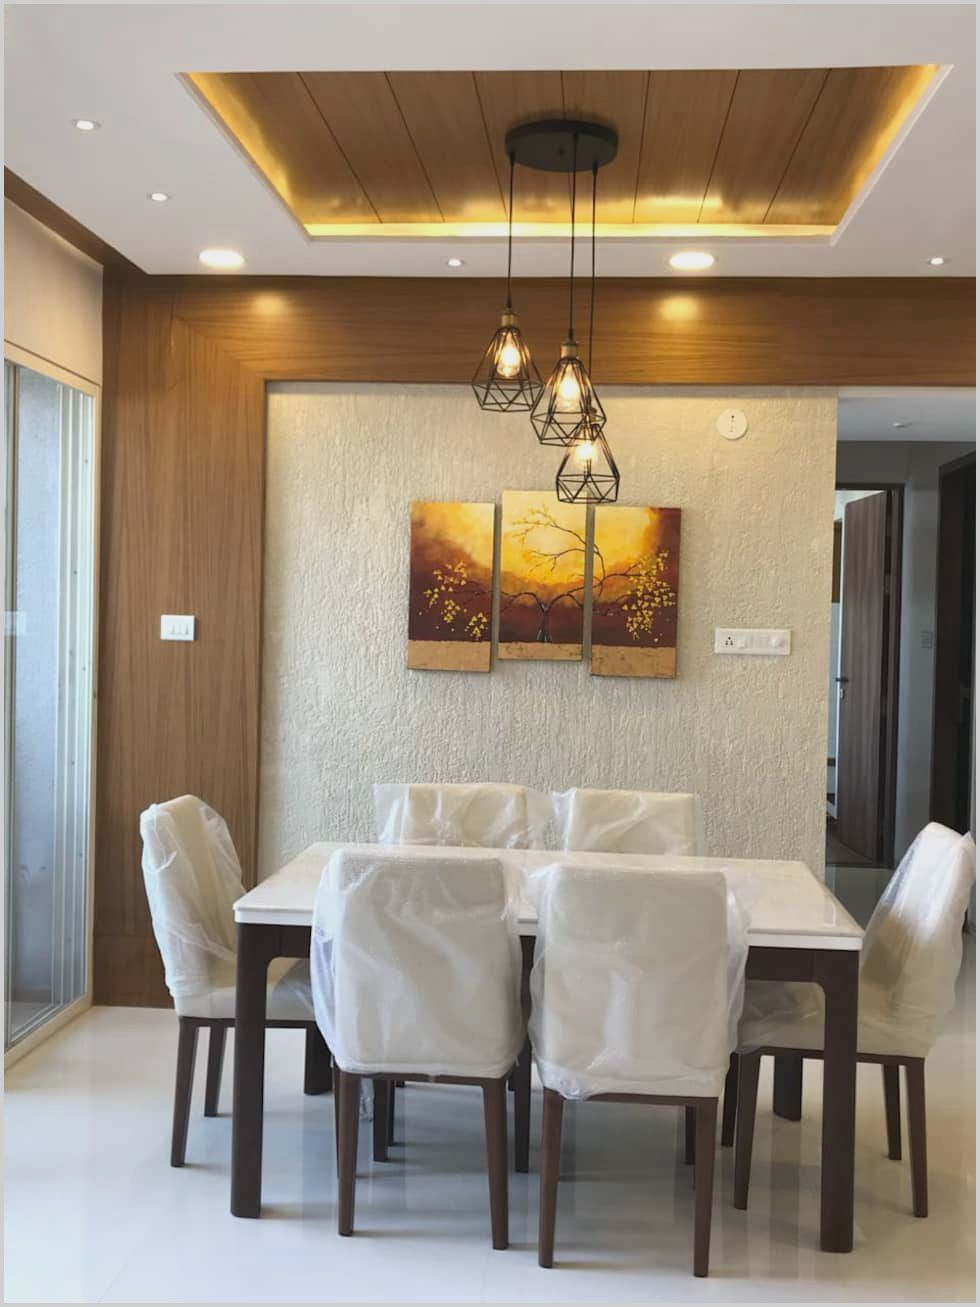 Bedroom Ceiling Design 2019 With Fan In 2020 House Cei